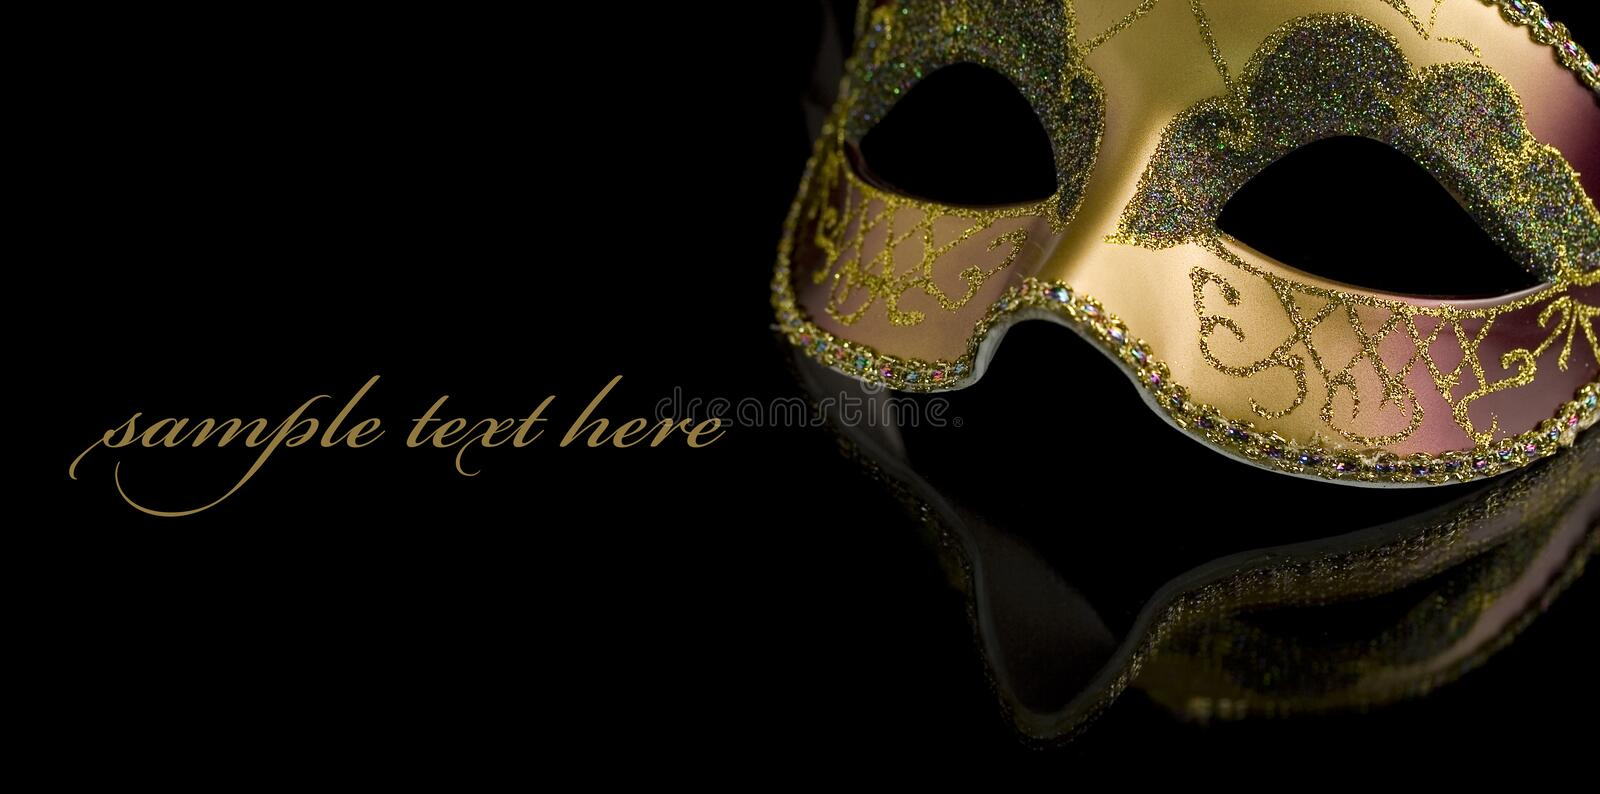 Masque photo stock